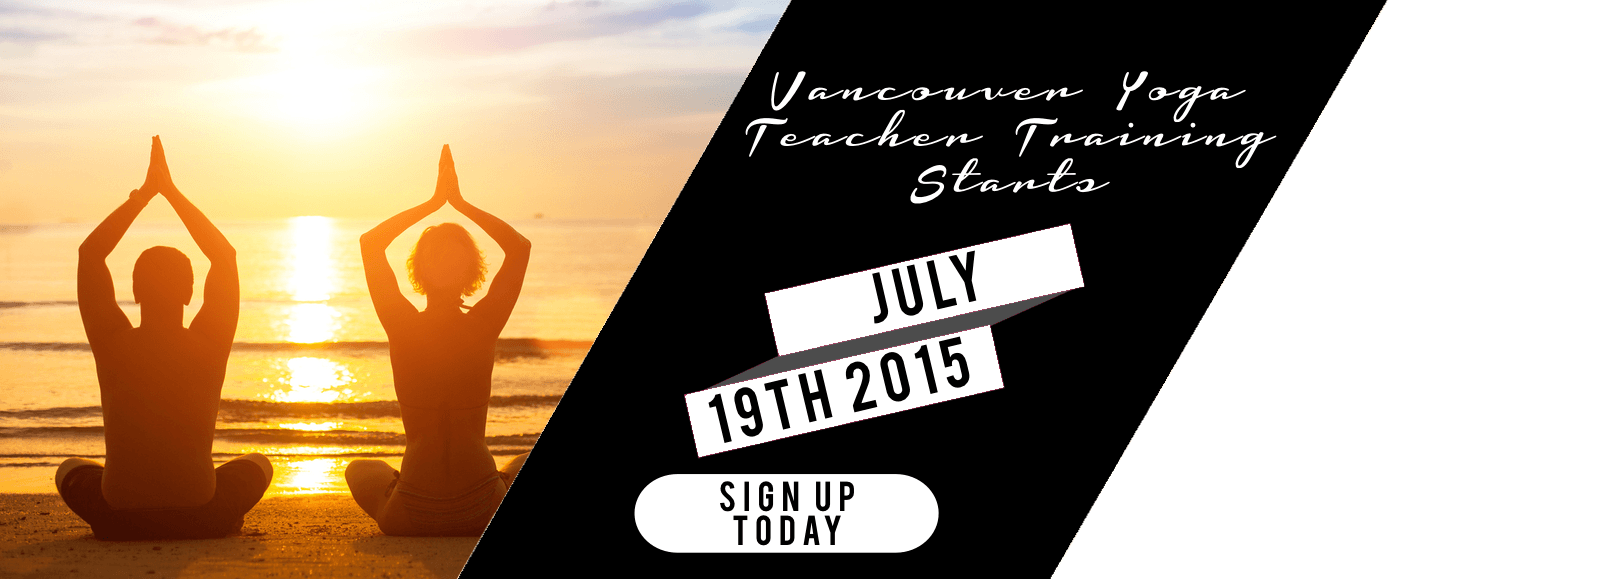 Vancouver-Yoga-Teacher-Training-july-19